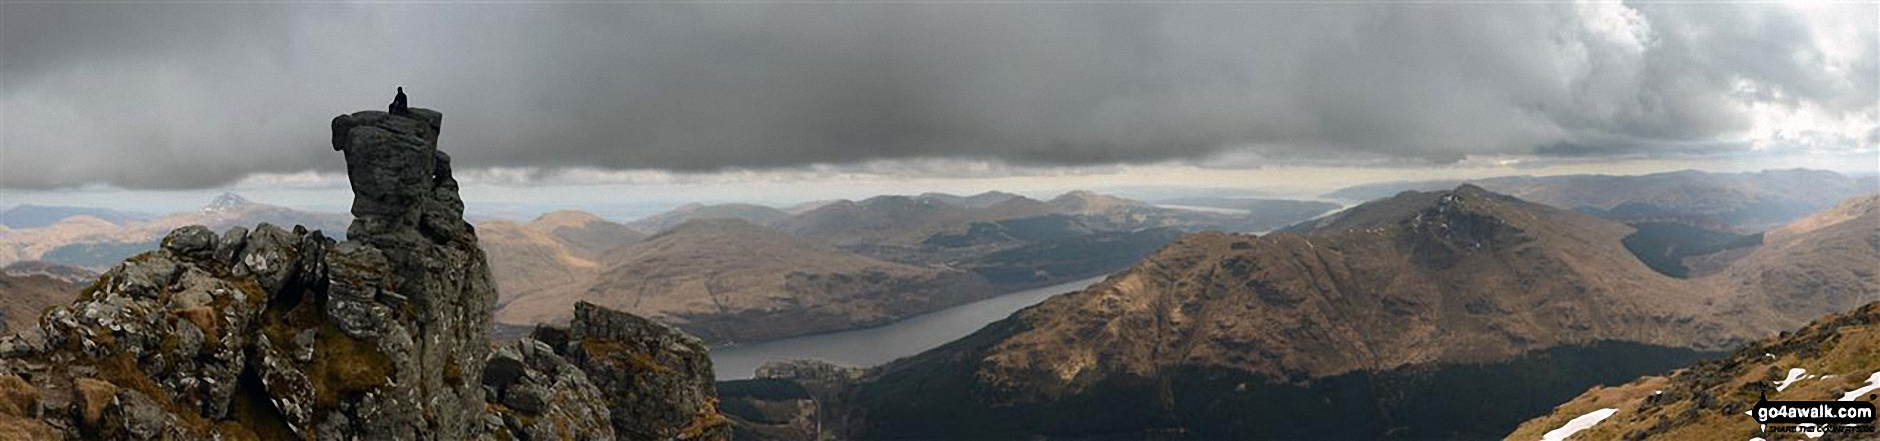 The Cobbler (Ben Arthur) (left), Loch Long and The Brack (right)